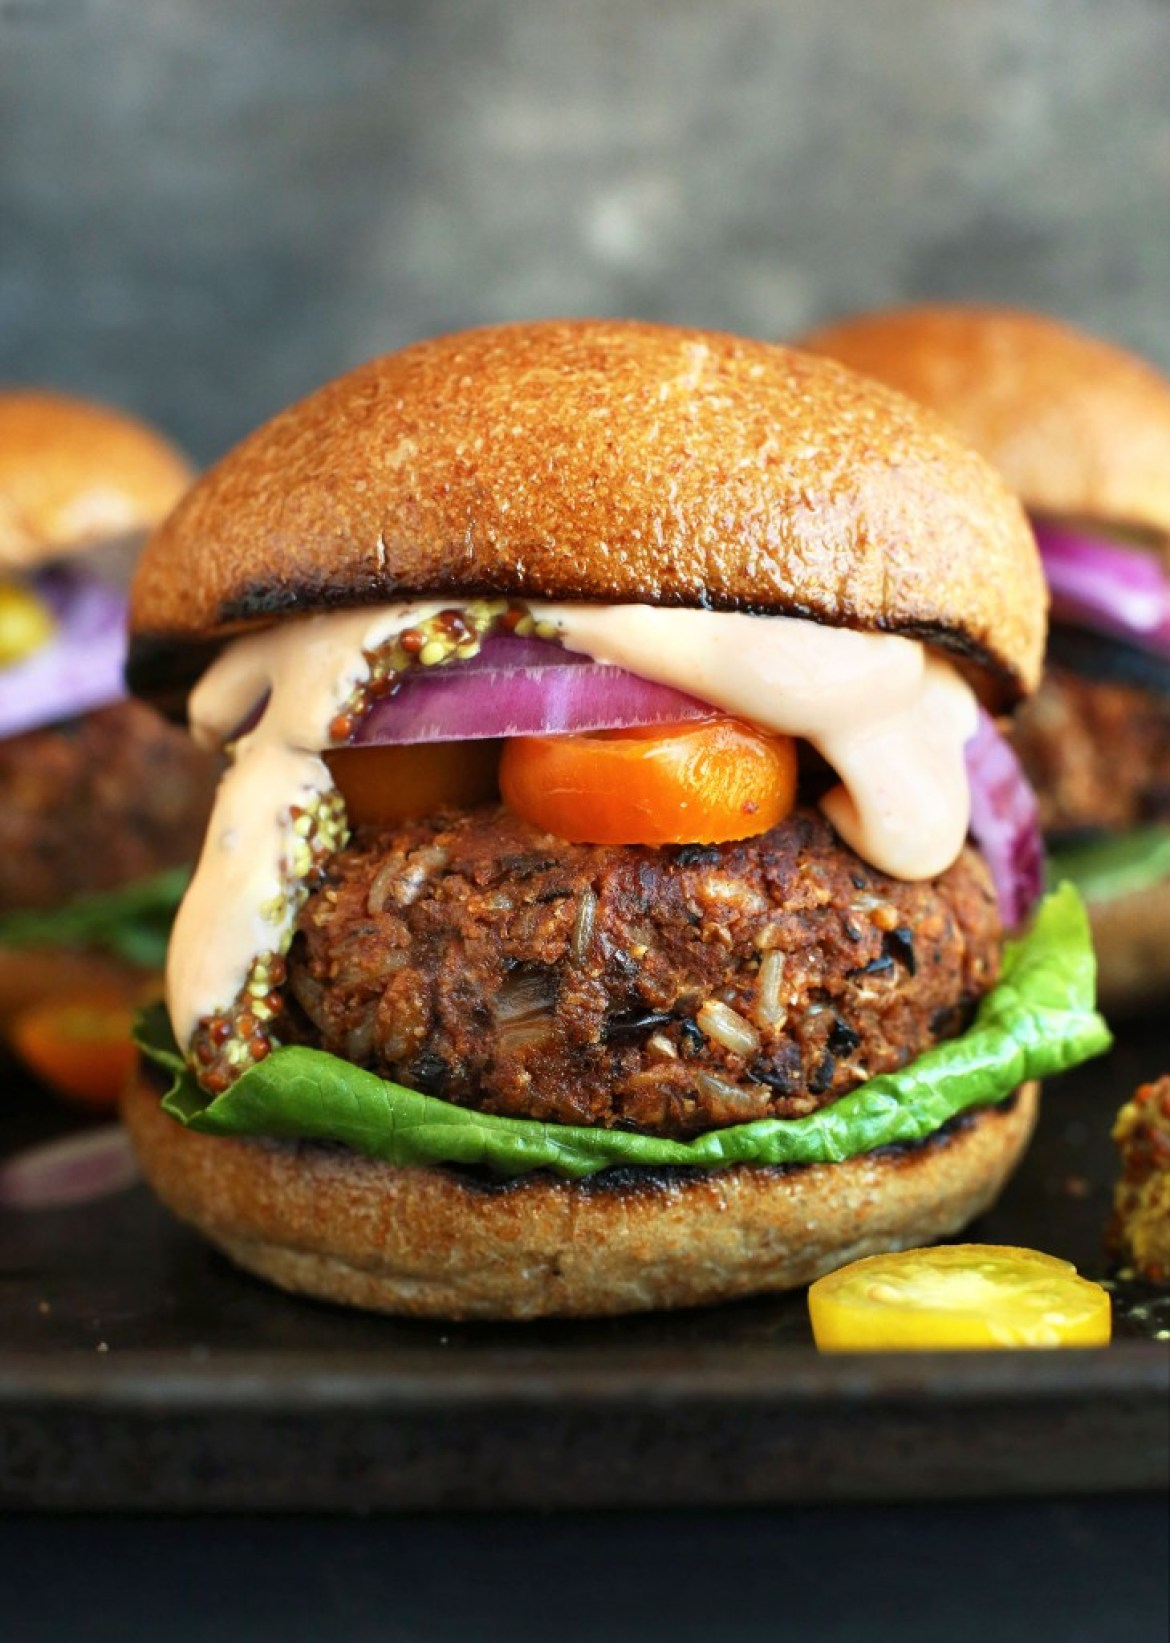 Easy Grillable Veggie Burger with a Toasted Bun